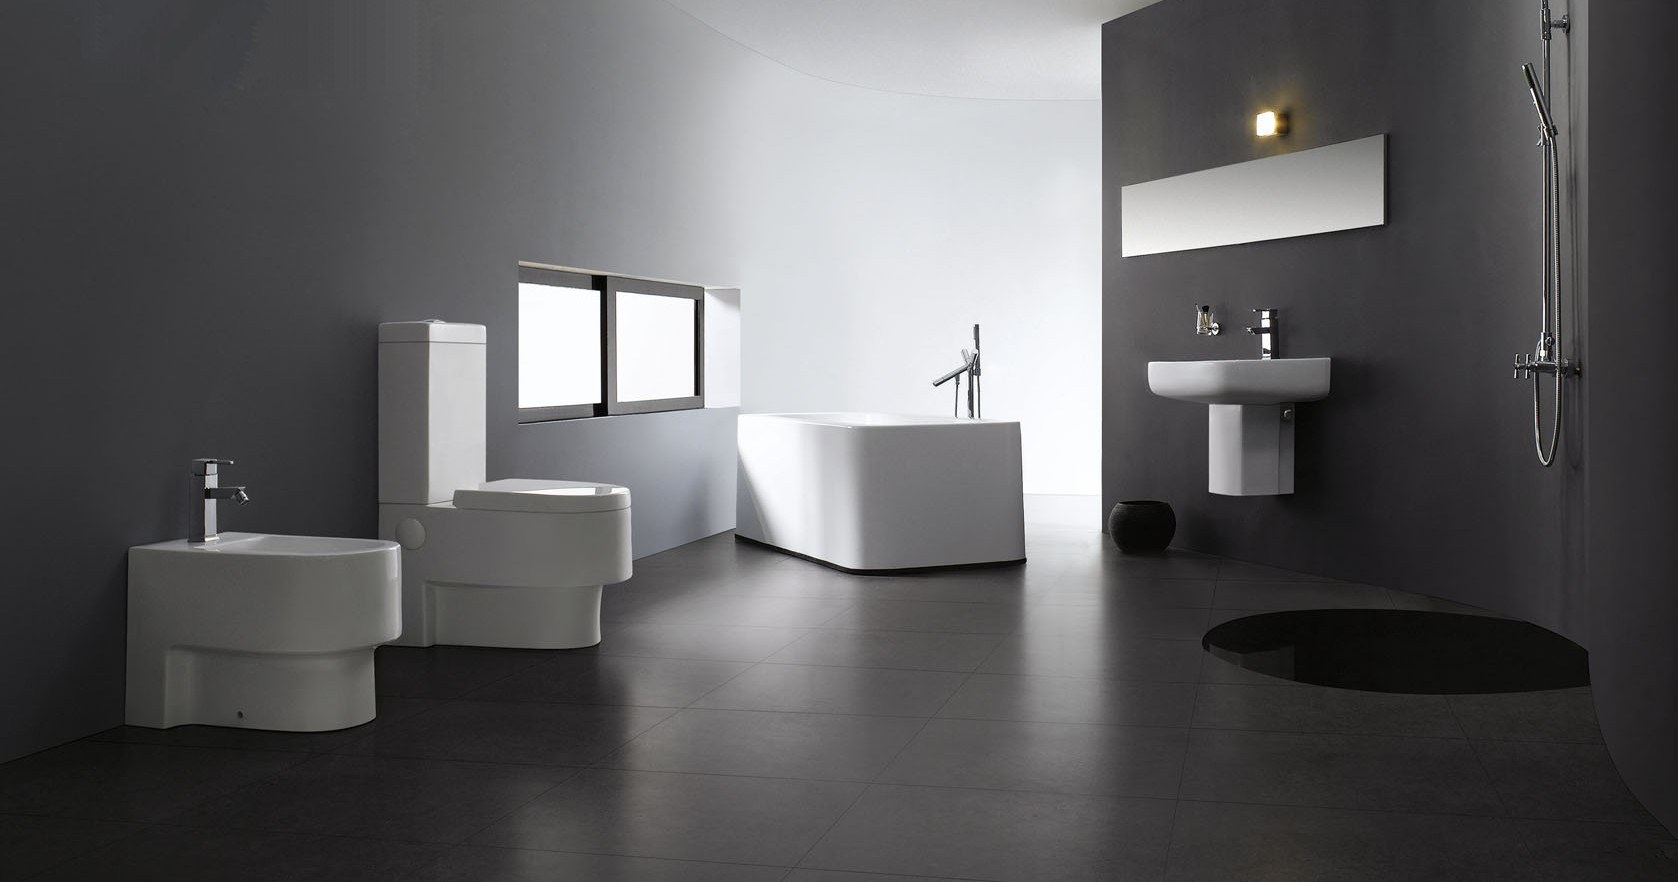 abruzzi modern bathroom toilet. Black Bedroom Furniture Sets. Home Design Ideas